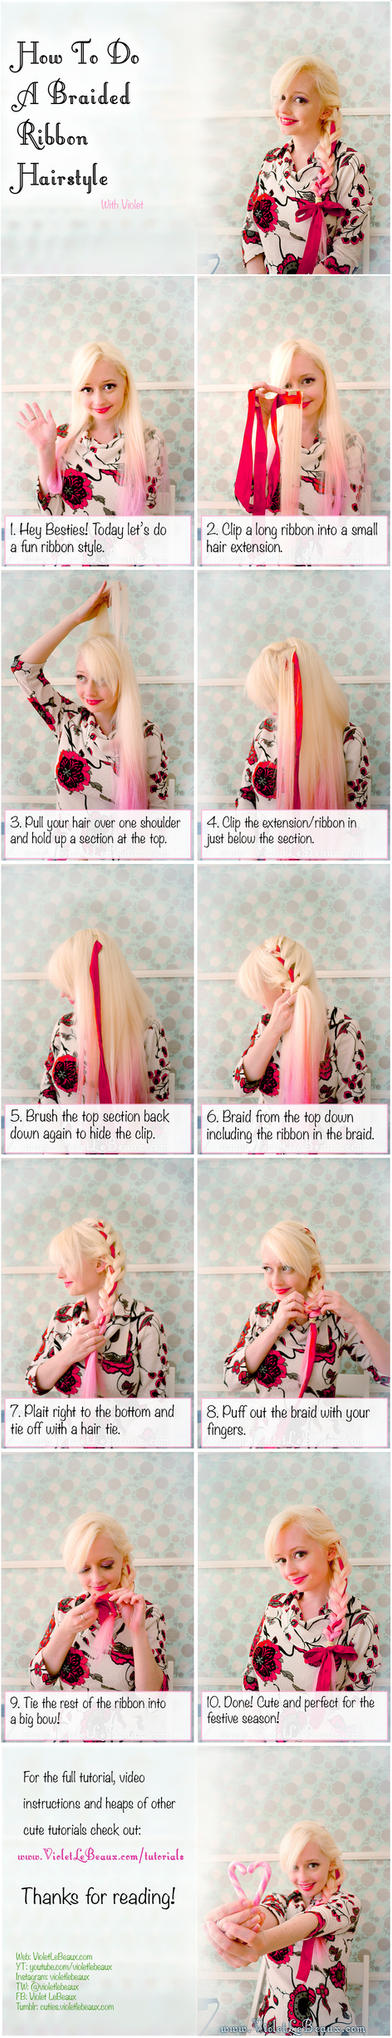 Holiday Ribbon Braid Hairstyle Tutorial by VioletLeBeaux